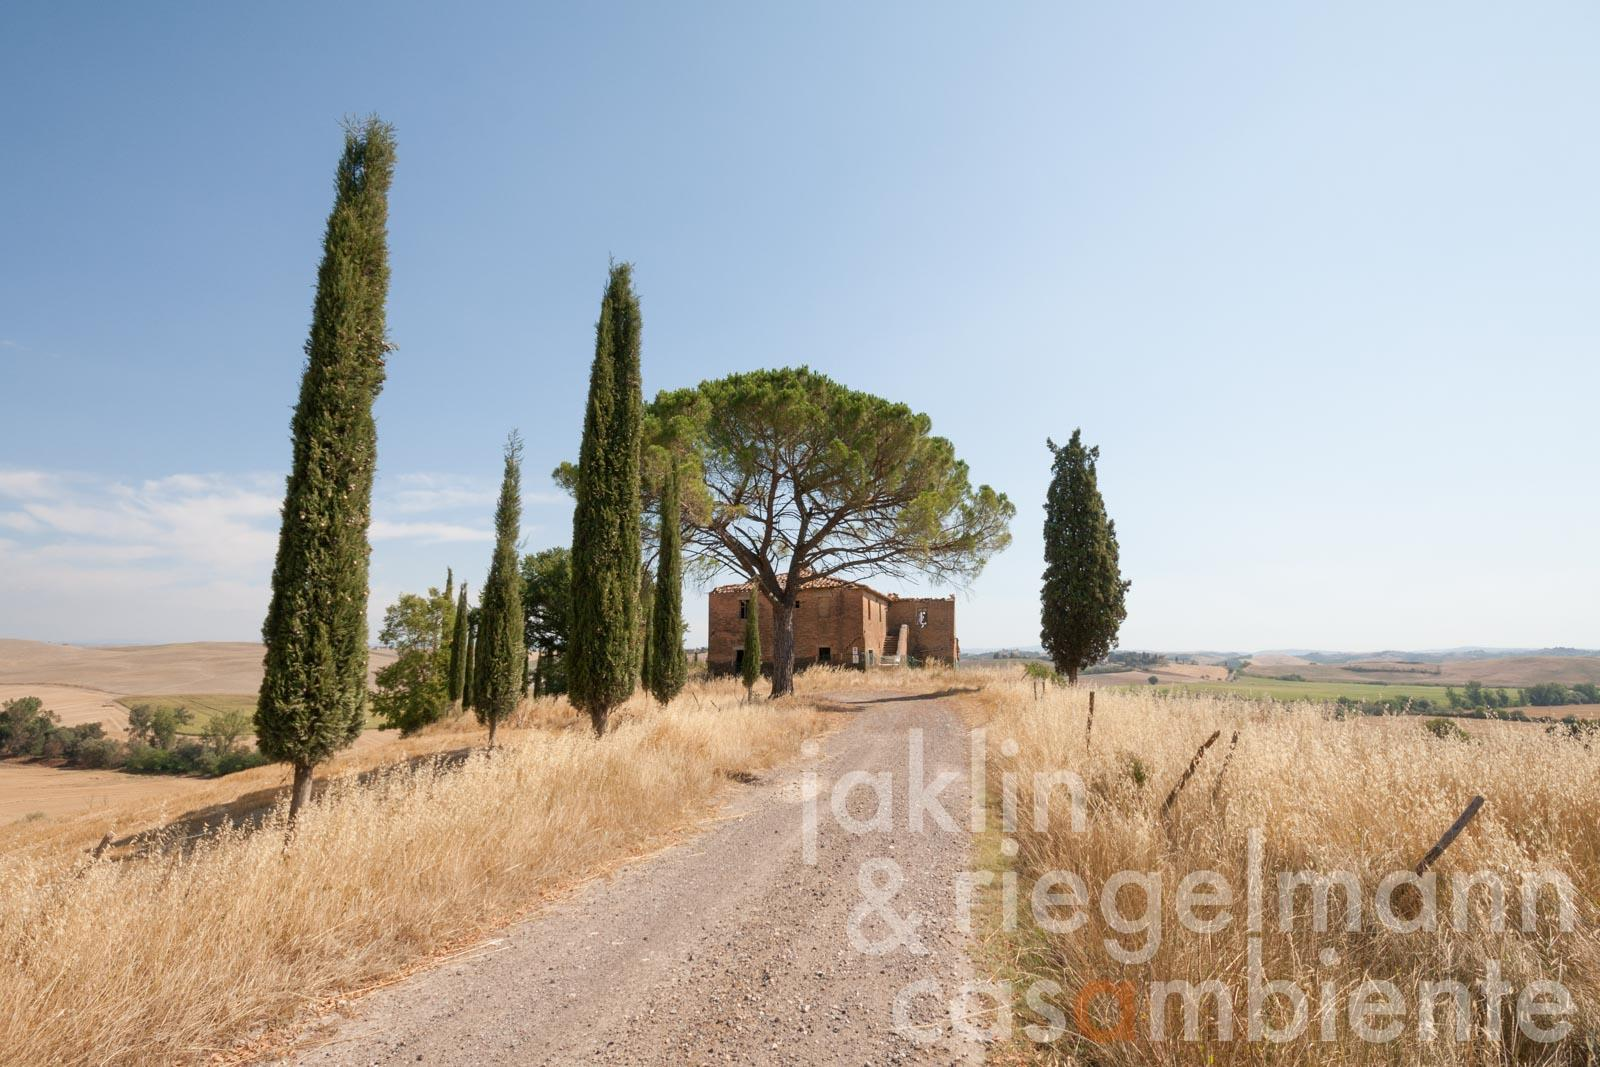 Restoration project of country house with garden and pool 18 km from Siena, turn-key ready